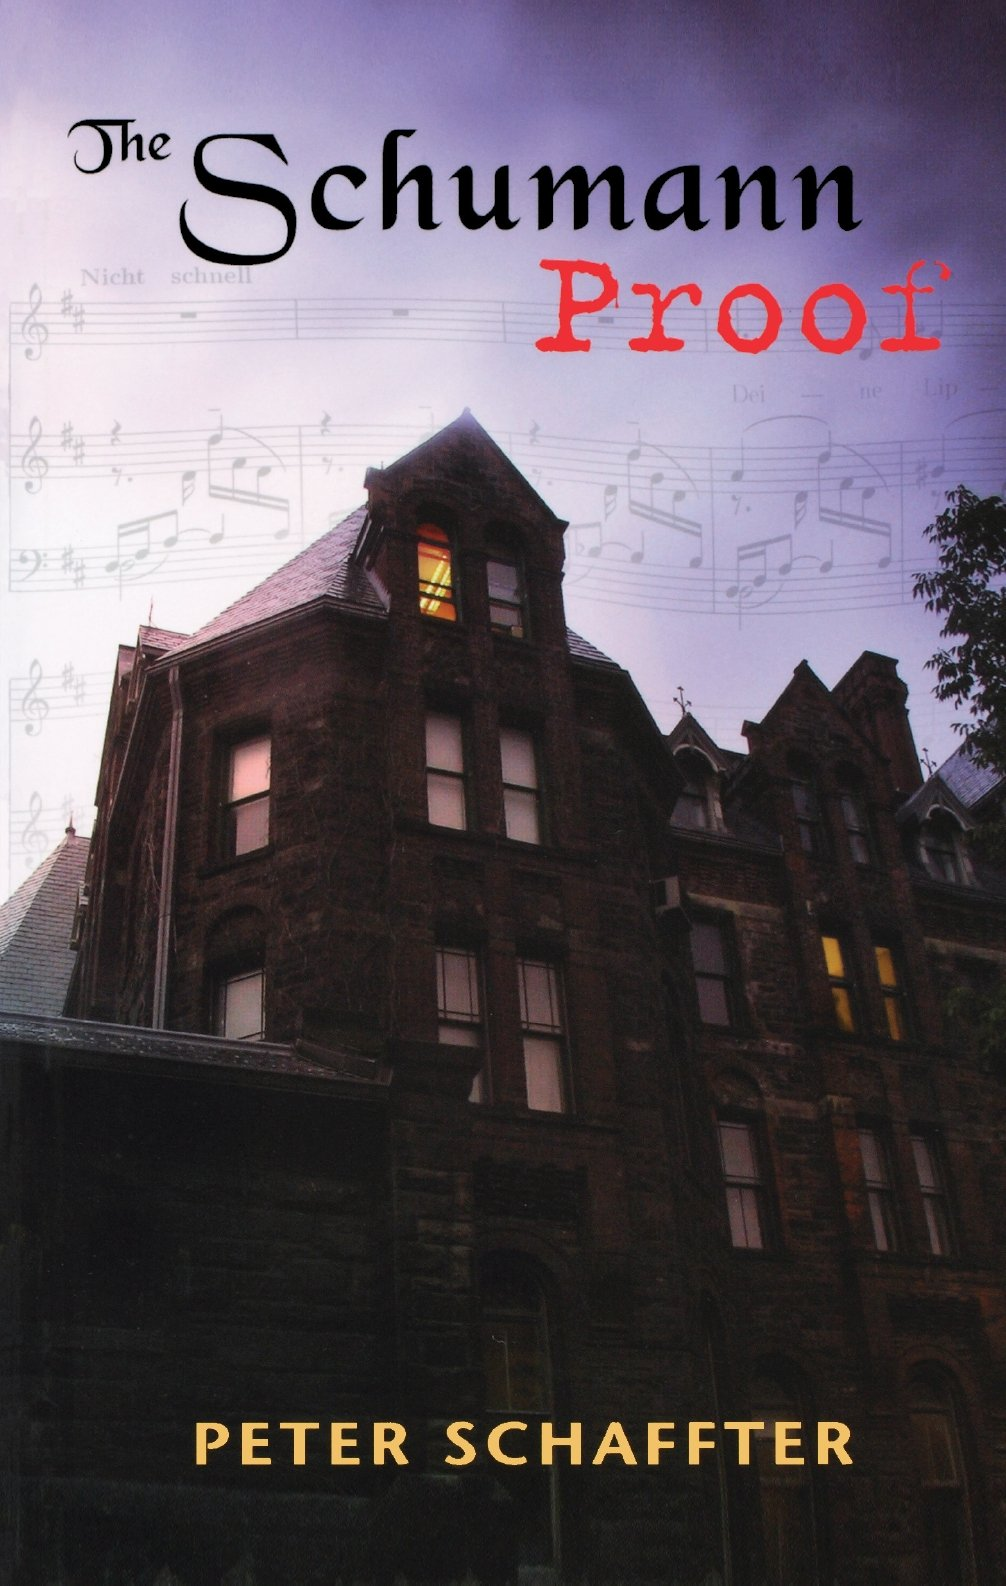 Download The Schumann Proof (Rendezvous Crime) ebook